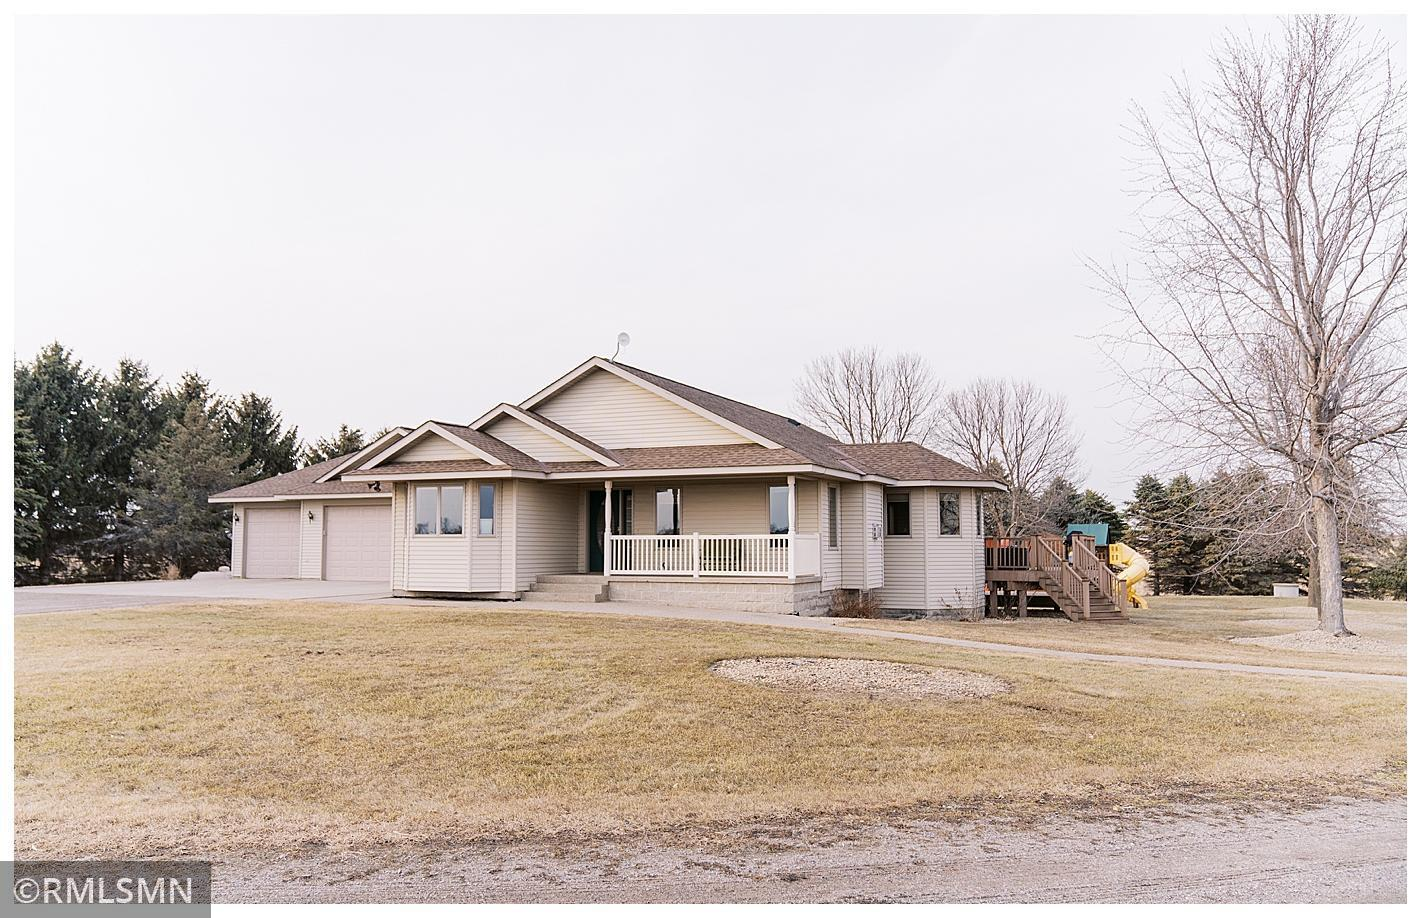 If you are looking for an Absolute Stunning Rambler in a great location on 5 acres, with a Large Outbuilding Look no further. This Beautful home features a Nice Open Large kitchen with a huge center island, corner pantry and a beautiful view out the patio door that leads to the deck and patio. The living room upstairs has a beautiful stone gas fireplace. There are 3 bedrooms and 2 bathrooms on the main level which includes a master suite. The Master includes a private bathroom and a huge walk in closet. The entryway/mudroom entering from the garage has washer and dryer and nice storage and closets. The yard is nice and level and a 28x38 heated shed in the backyard. The outbuilding has in floor heat roughed in for future and a bathroom. This home has ceramic tile, wood floors and has a great layout. You will love the feel you get when you enter this home. There is a great sized yard to enjoy the outdoors. The lower level is finished and has 2 more bedrooms and bath, family room w/bar